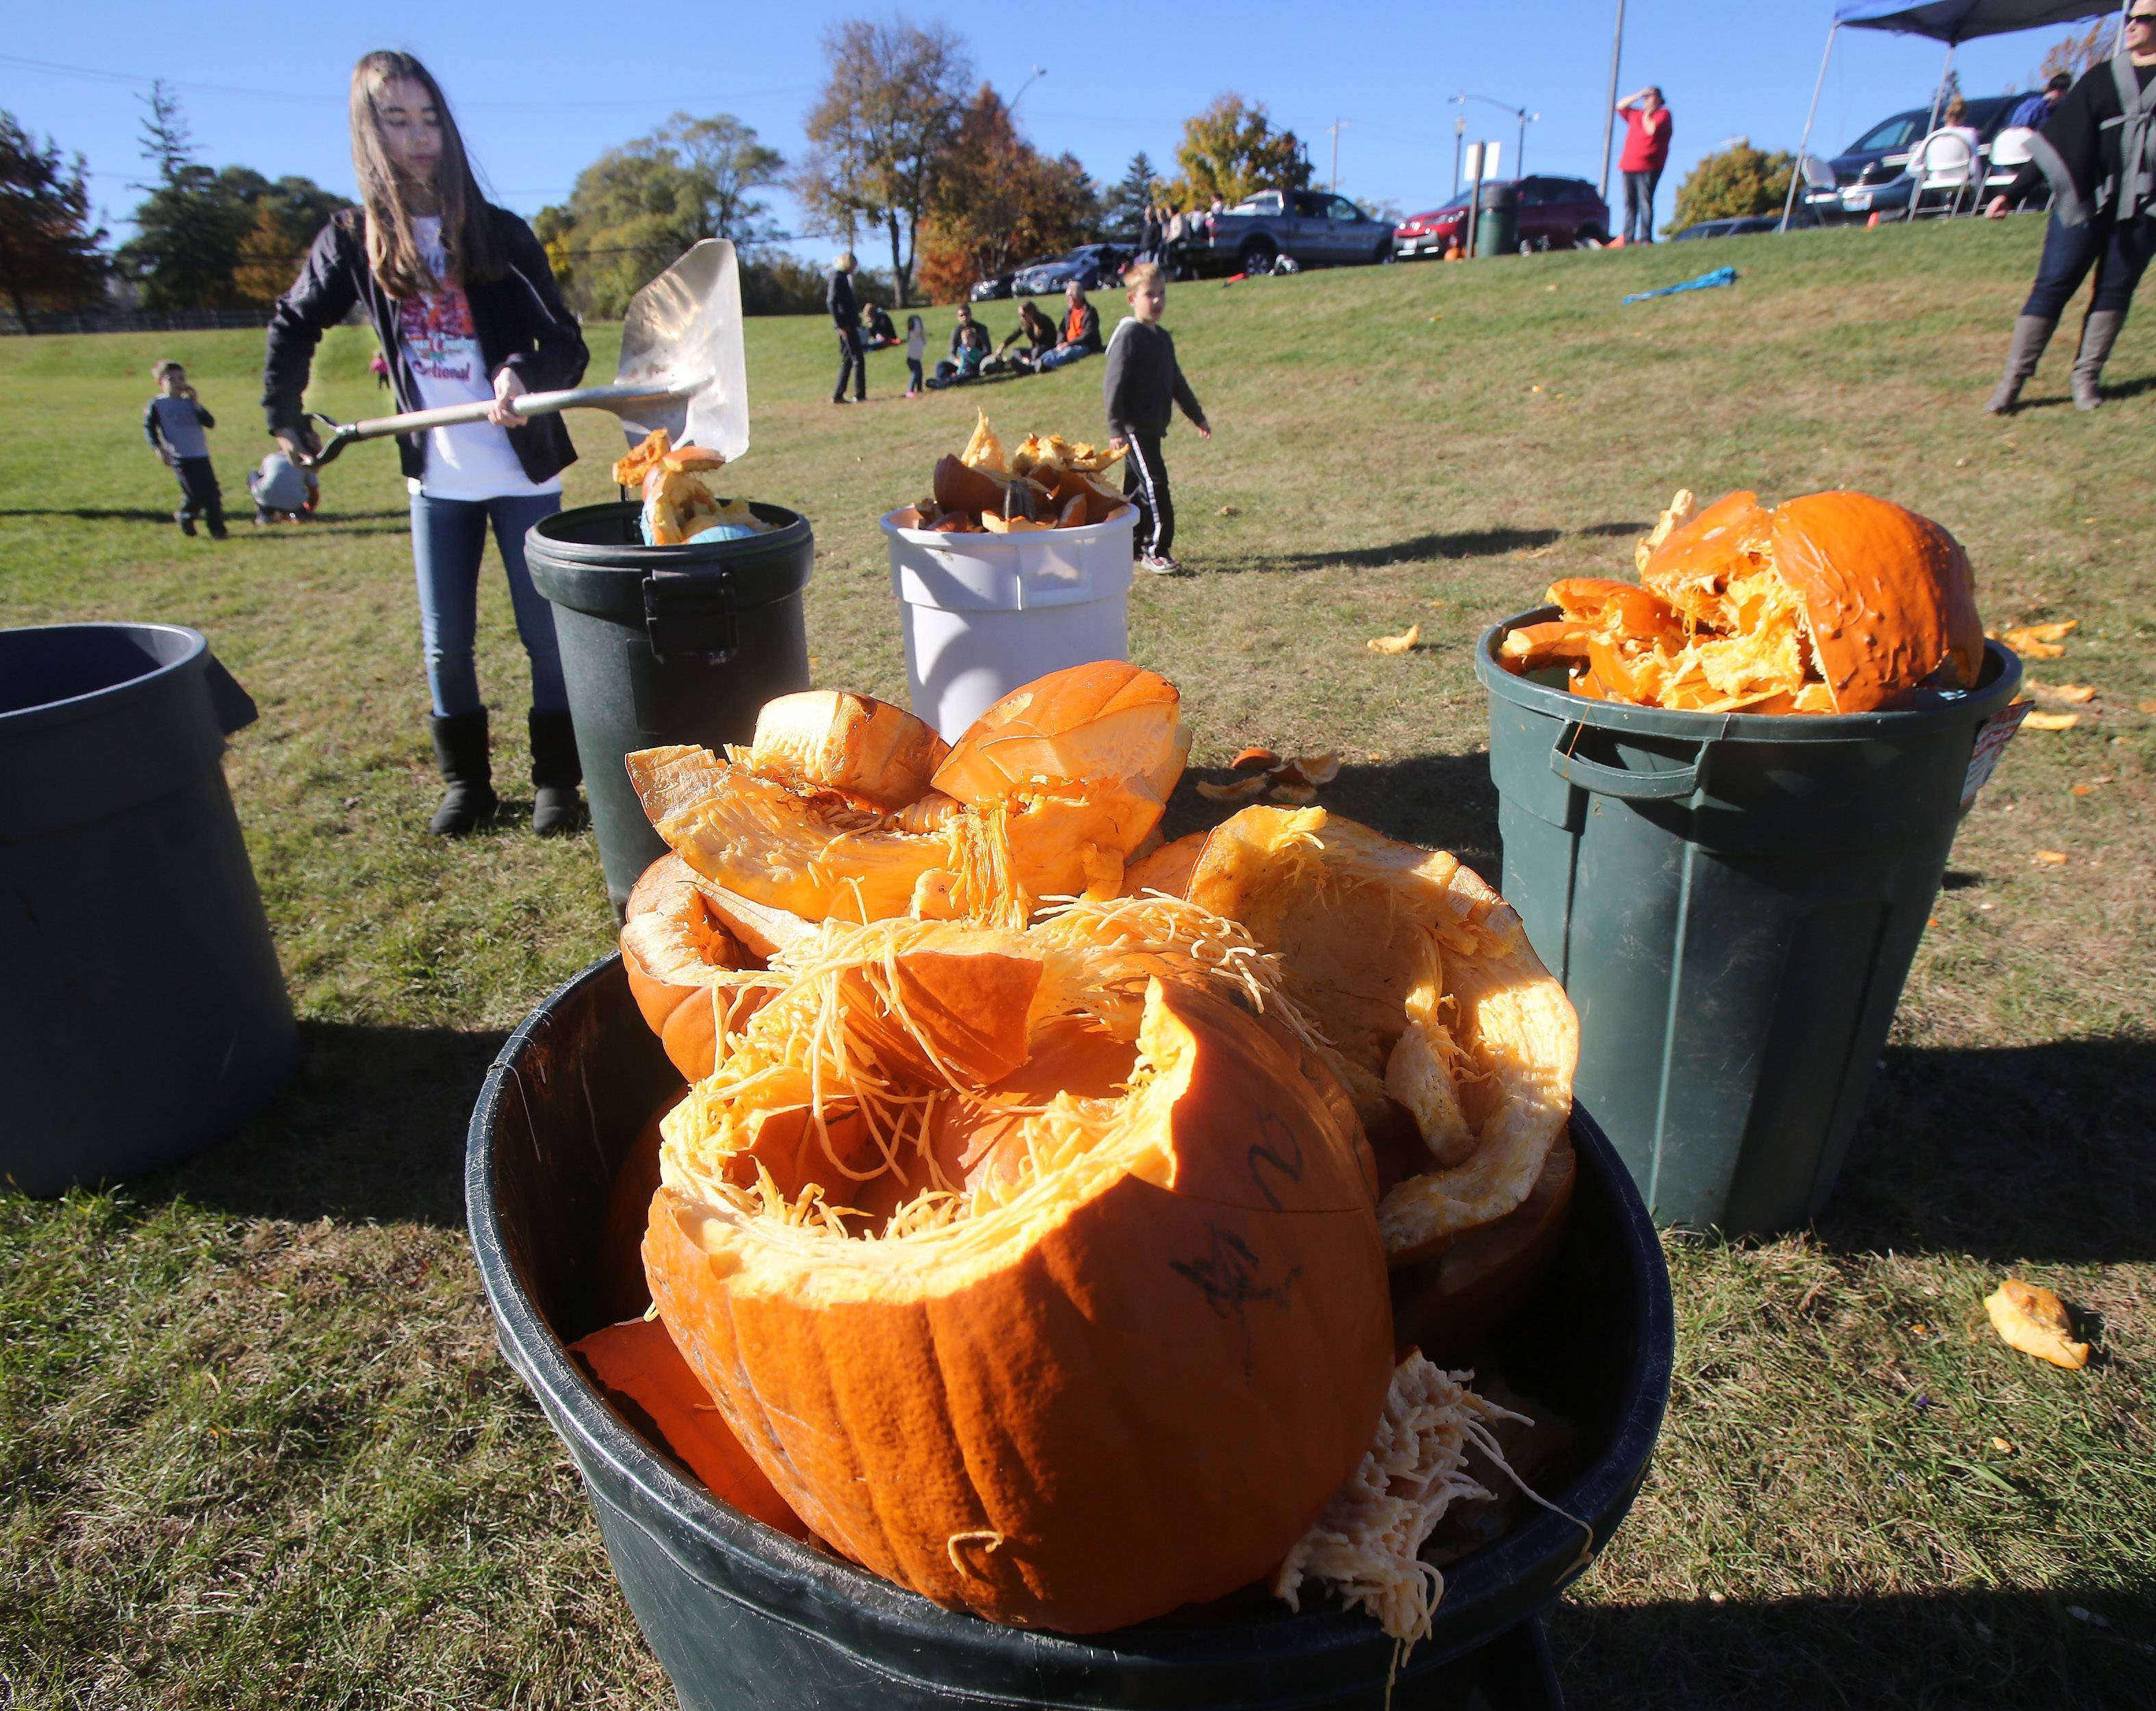 The Mundelein Park District Pumpkin Drop returns to Community Park in Mundelein.